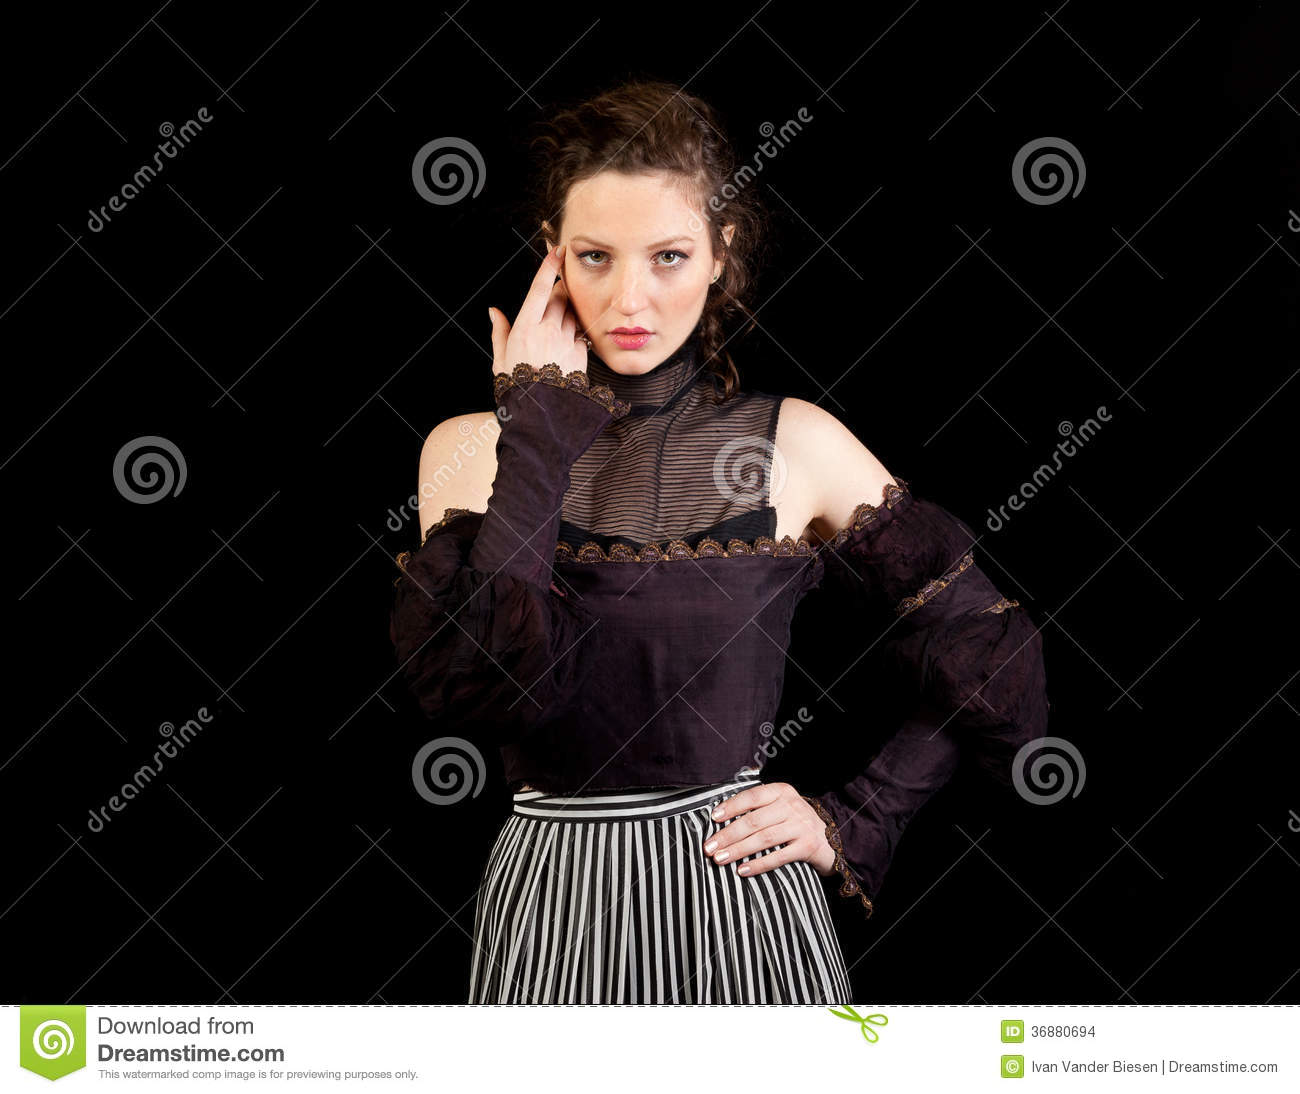 Download Ragazza In Vestito Vittoriano Scuro Fotografia Stock - Immagine di edwardian, attraente: 36880694